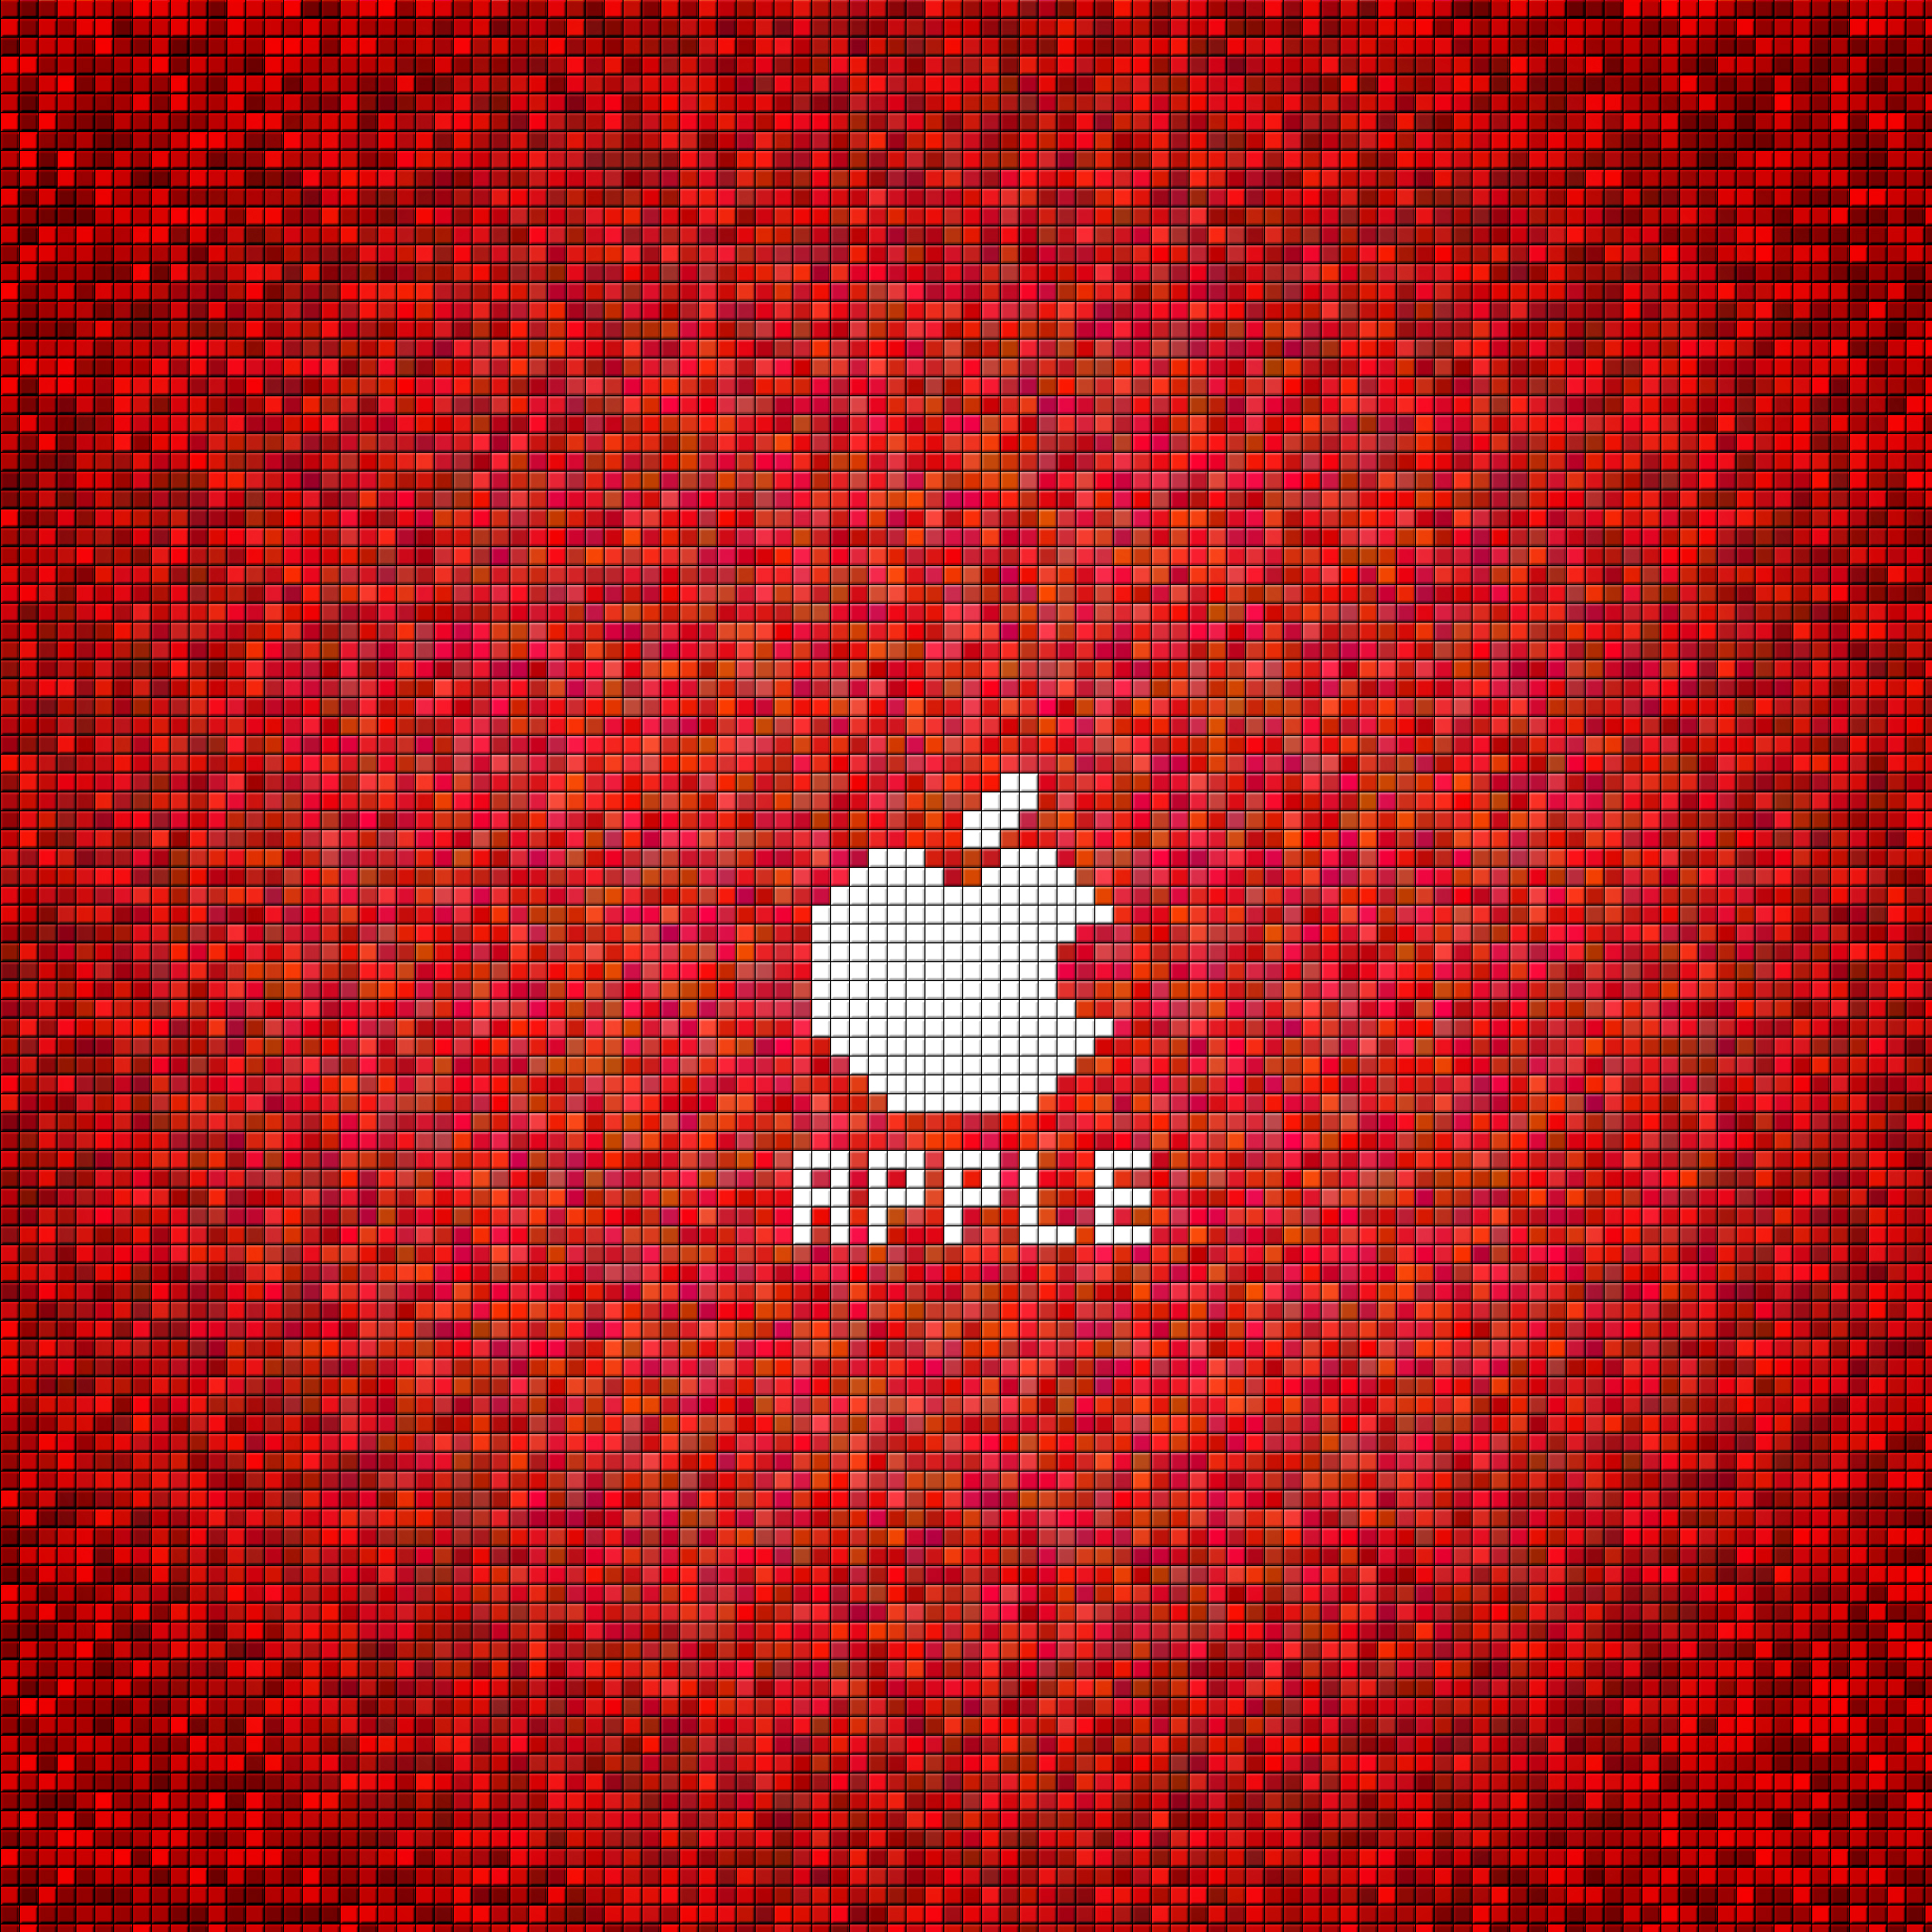 apple red square ipad retina wallpaper for iphone x 8 7 6 free download on 3wallpapers. Black Bedroom Furniture Sets. Home Design Ideas